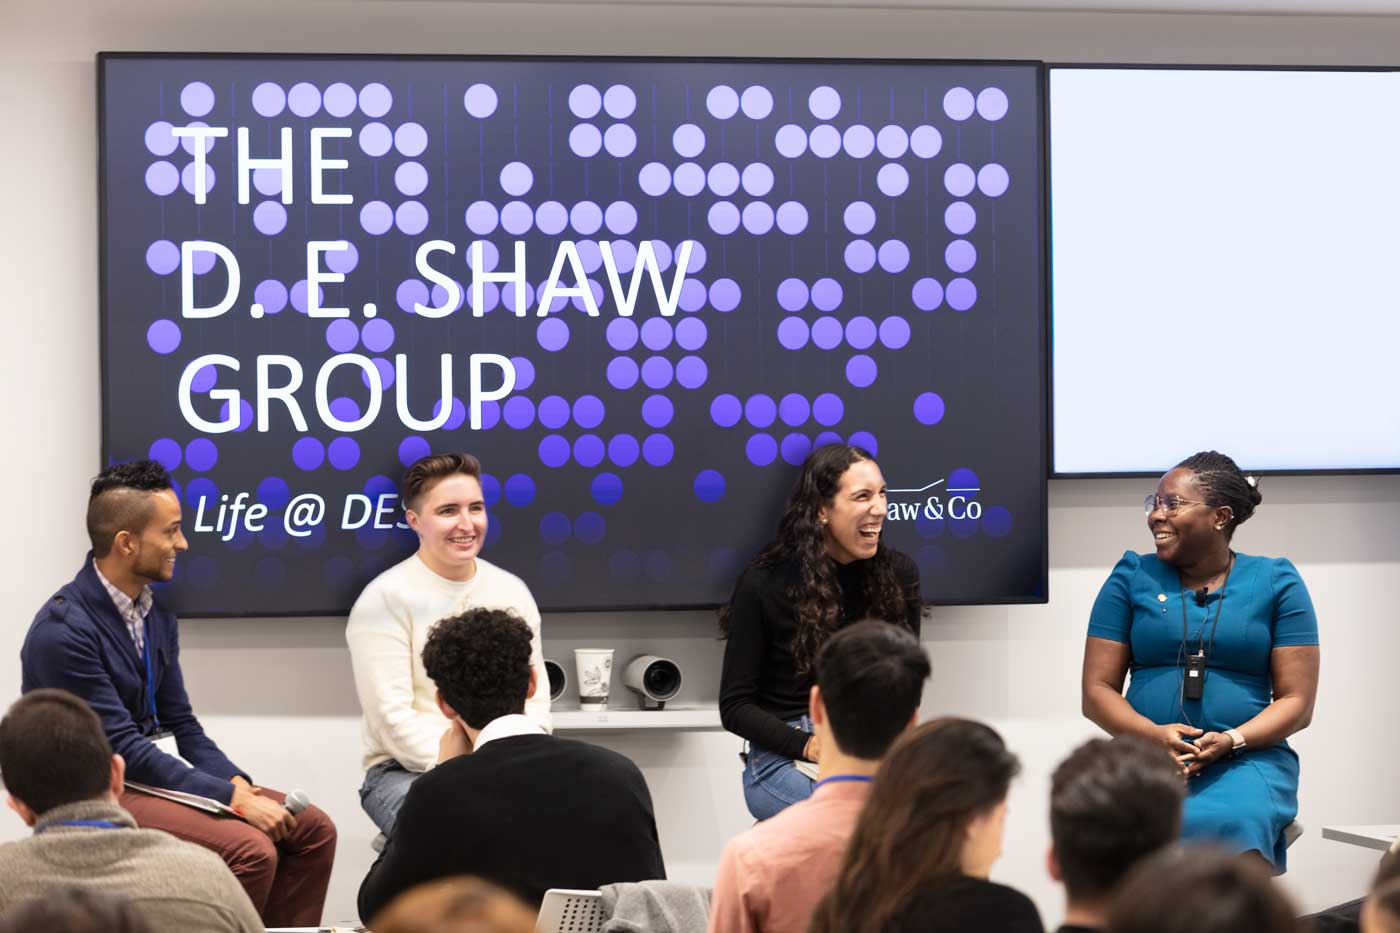 A diverse panel of employees talk about life at the D. E. Shaw group.